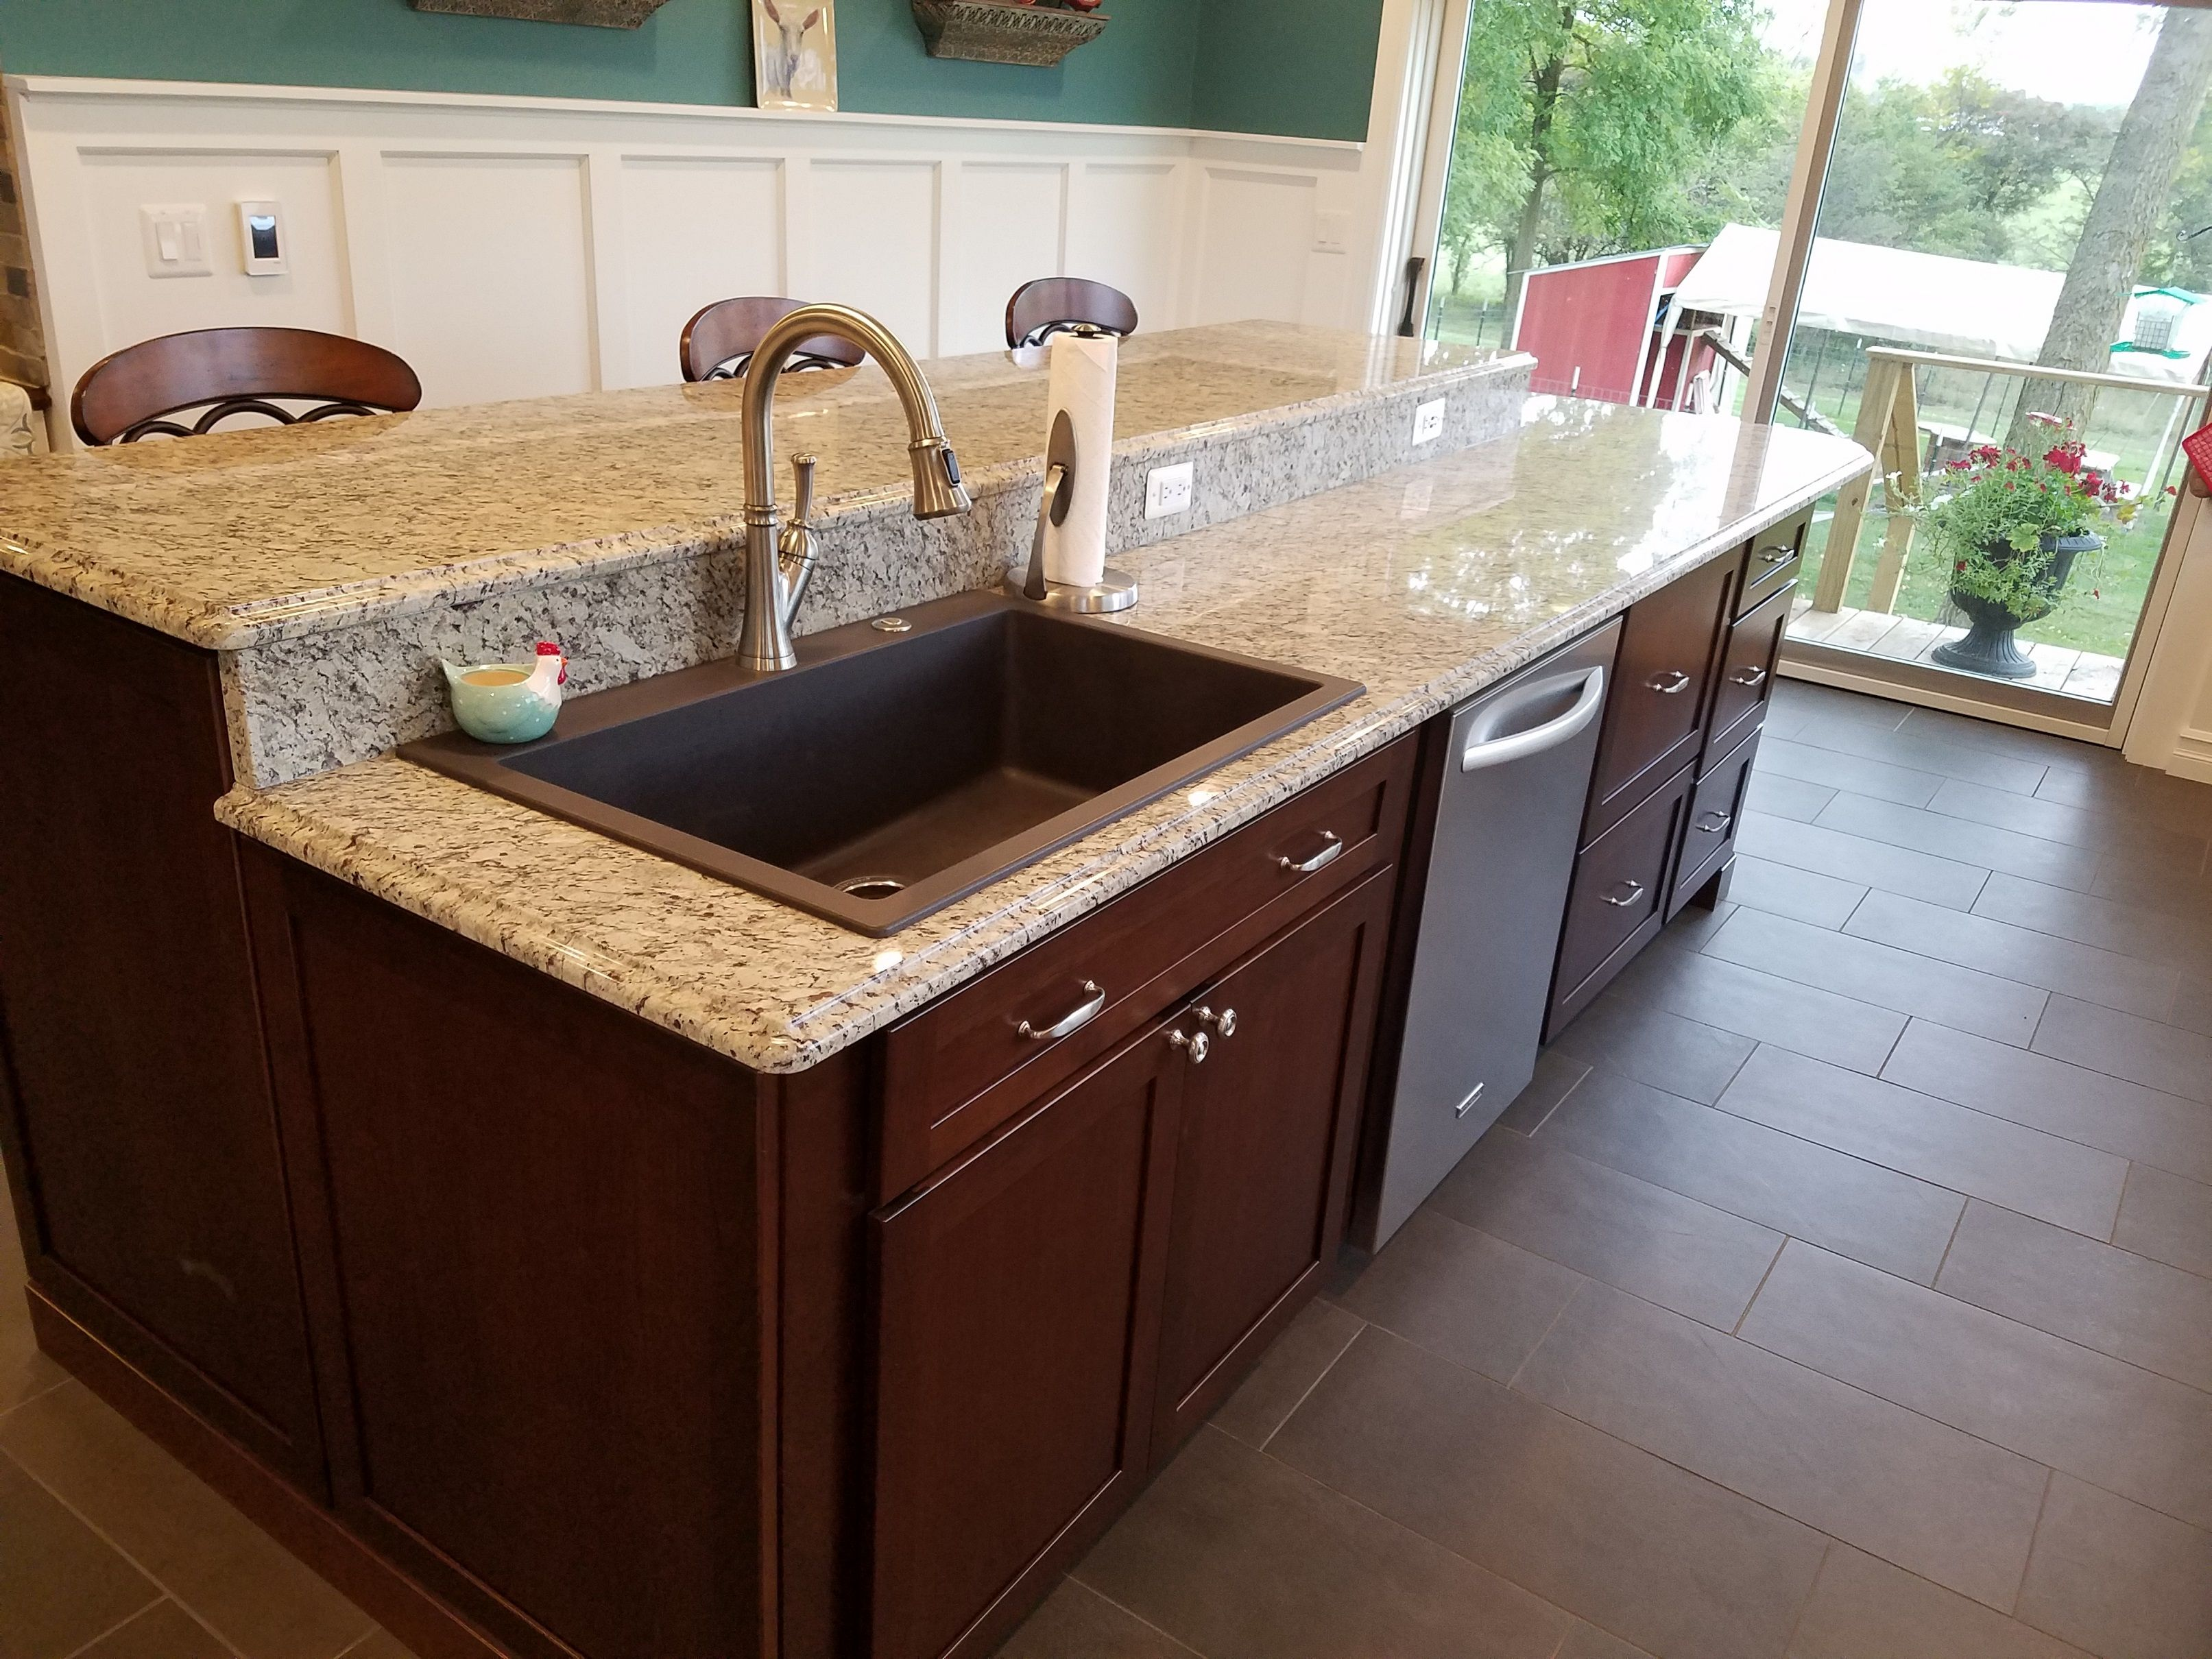 Large, Deep Granite Composite Sink In Graphite Color. White Wainscot  Panelling Was Added To